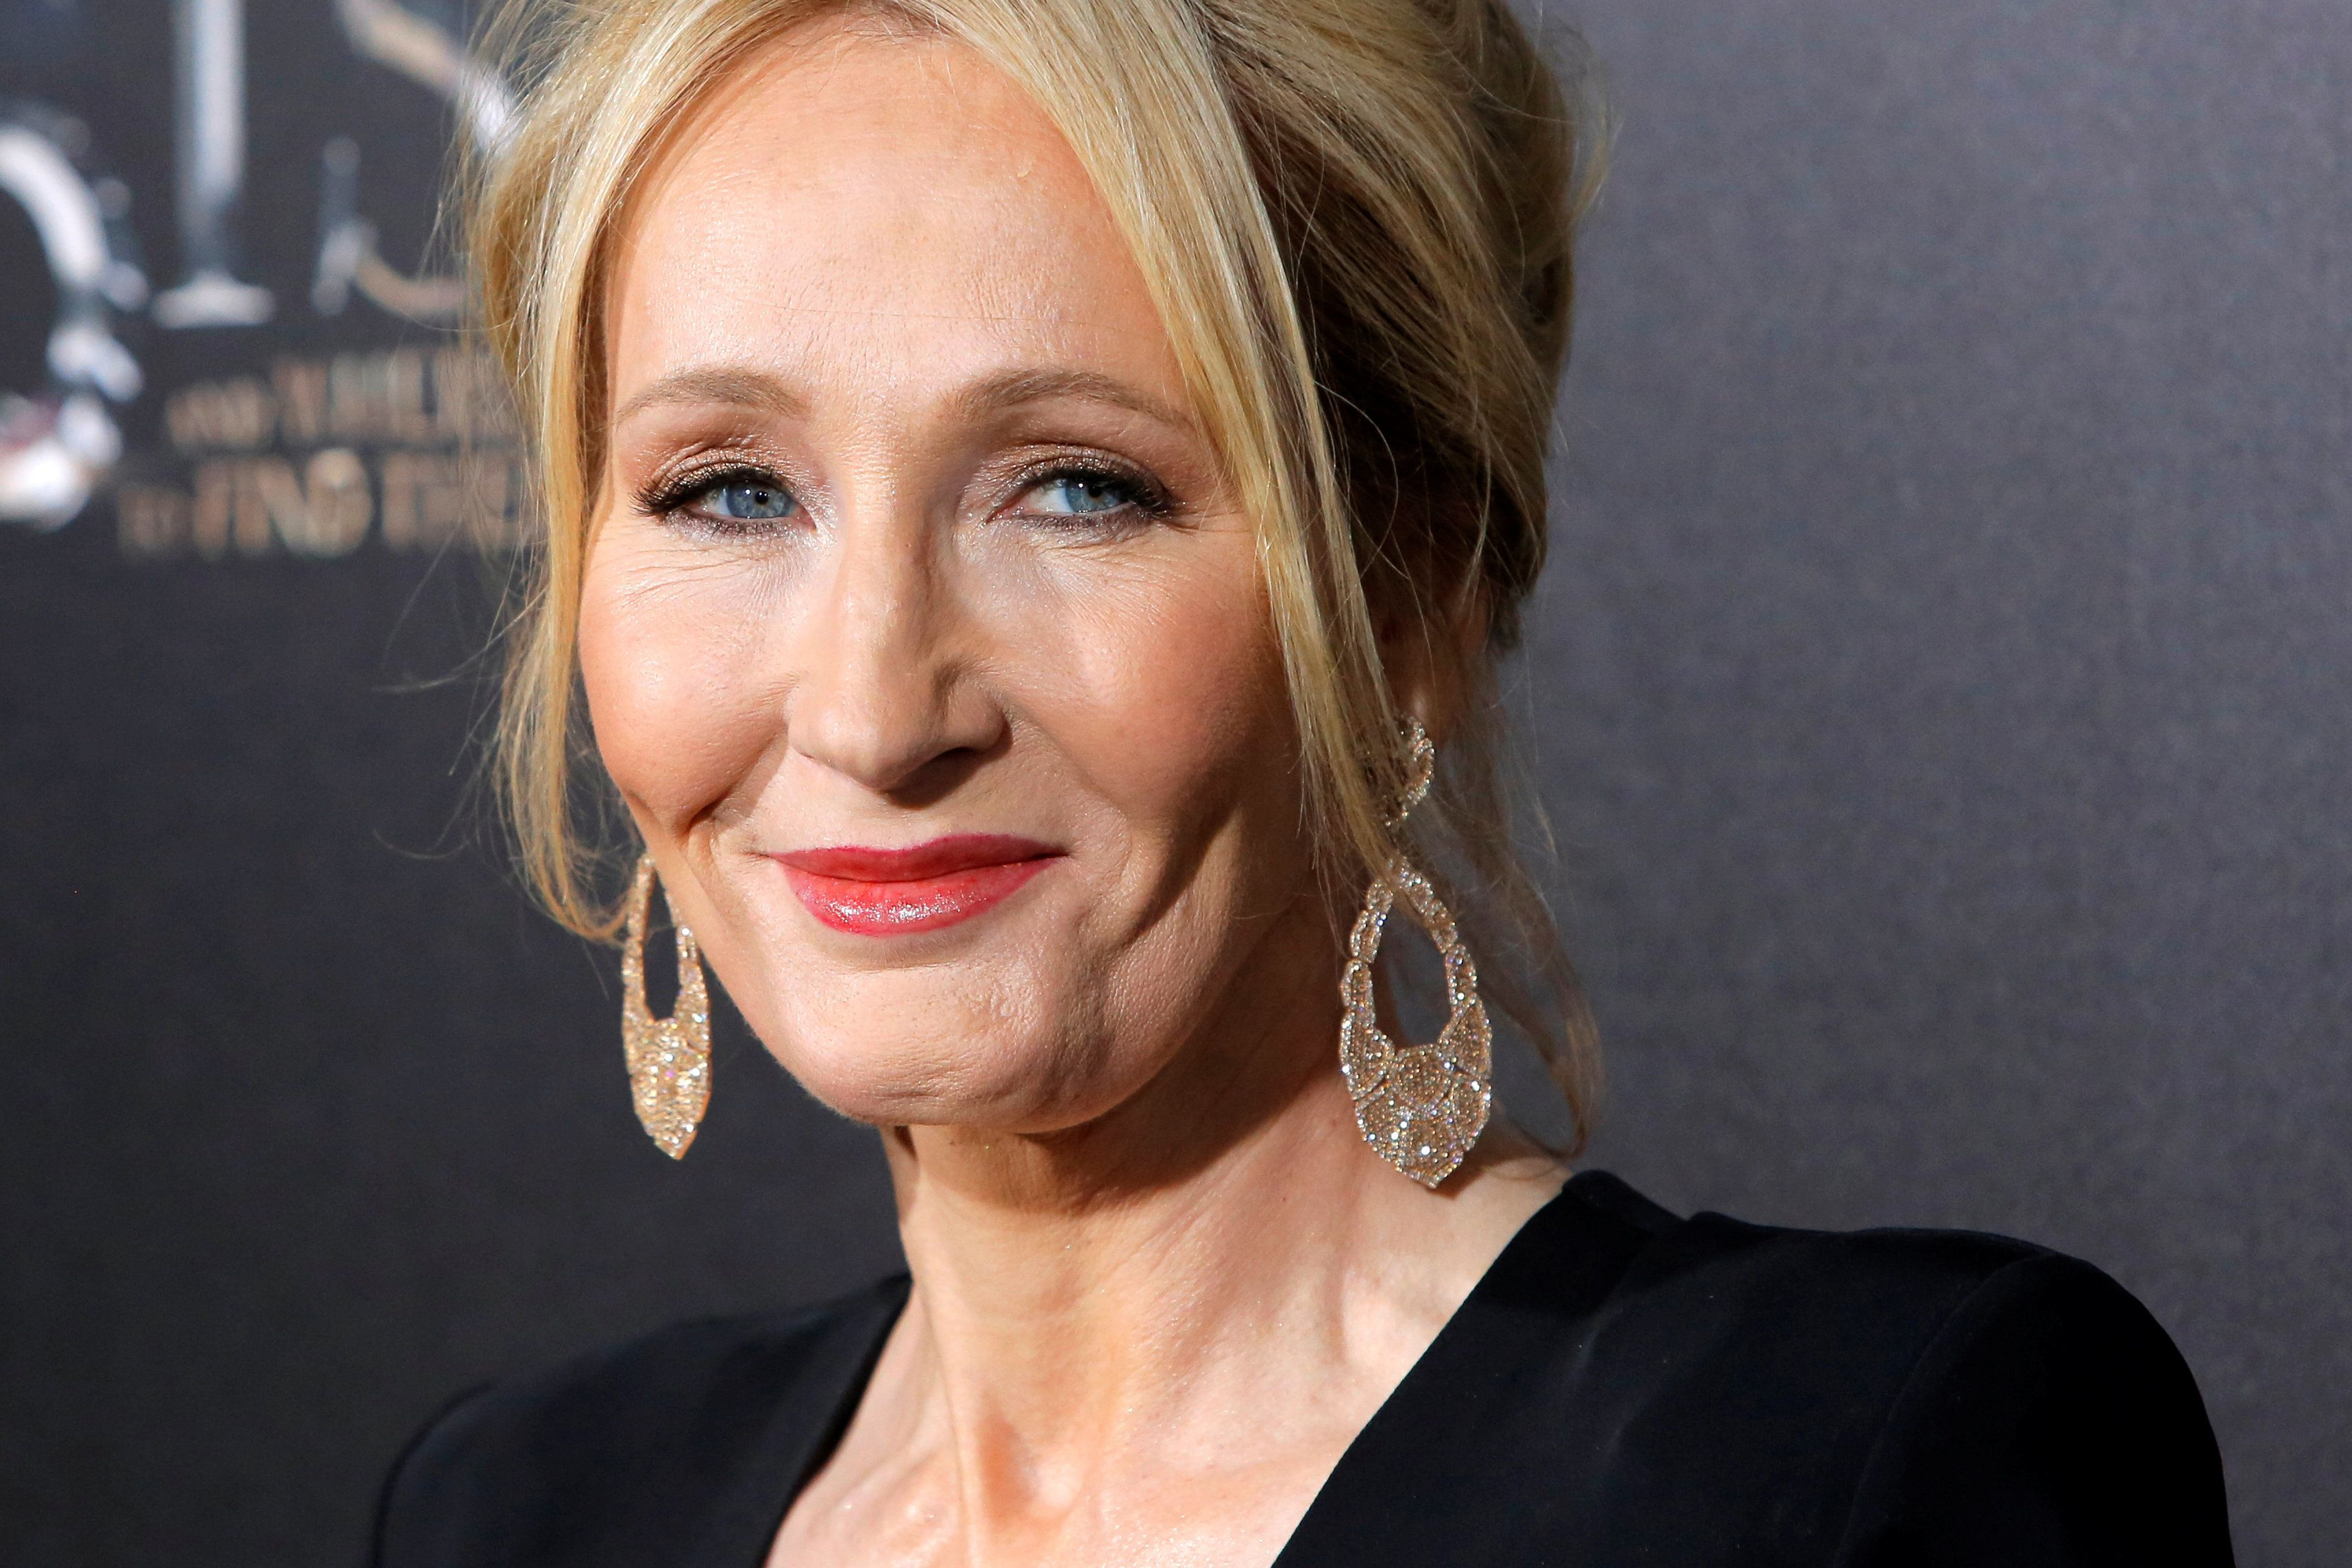 """Author J.K. Rowling attends the premiere of """"Fantastic Beasts and Where to Find Them"""" in Manhattan, New York, U.S., November 10, 2016.  REUTERS/Andrew Kelly"""